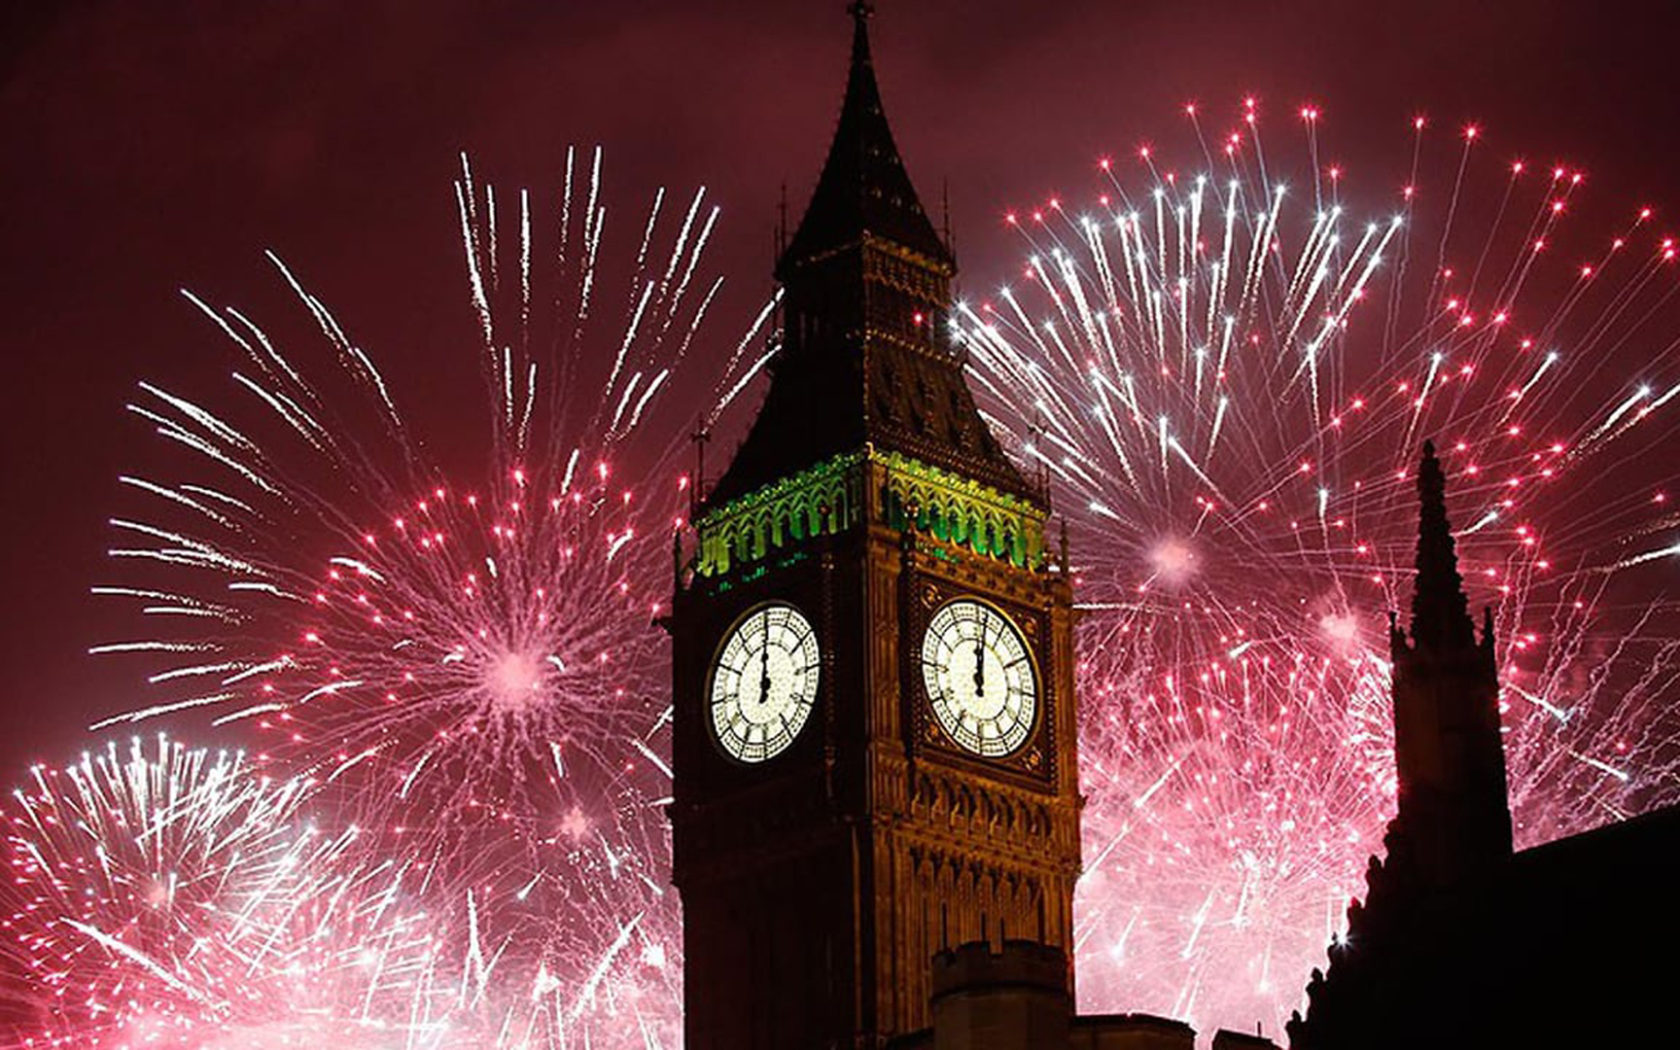 Iphone Wallpaper God Quotes New Years Eve Fireworks In London Big Ben Clock In London